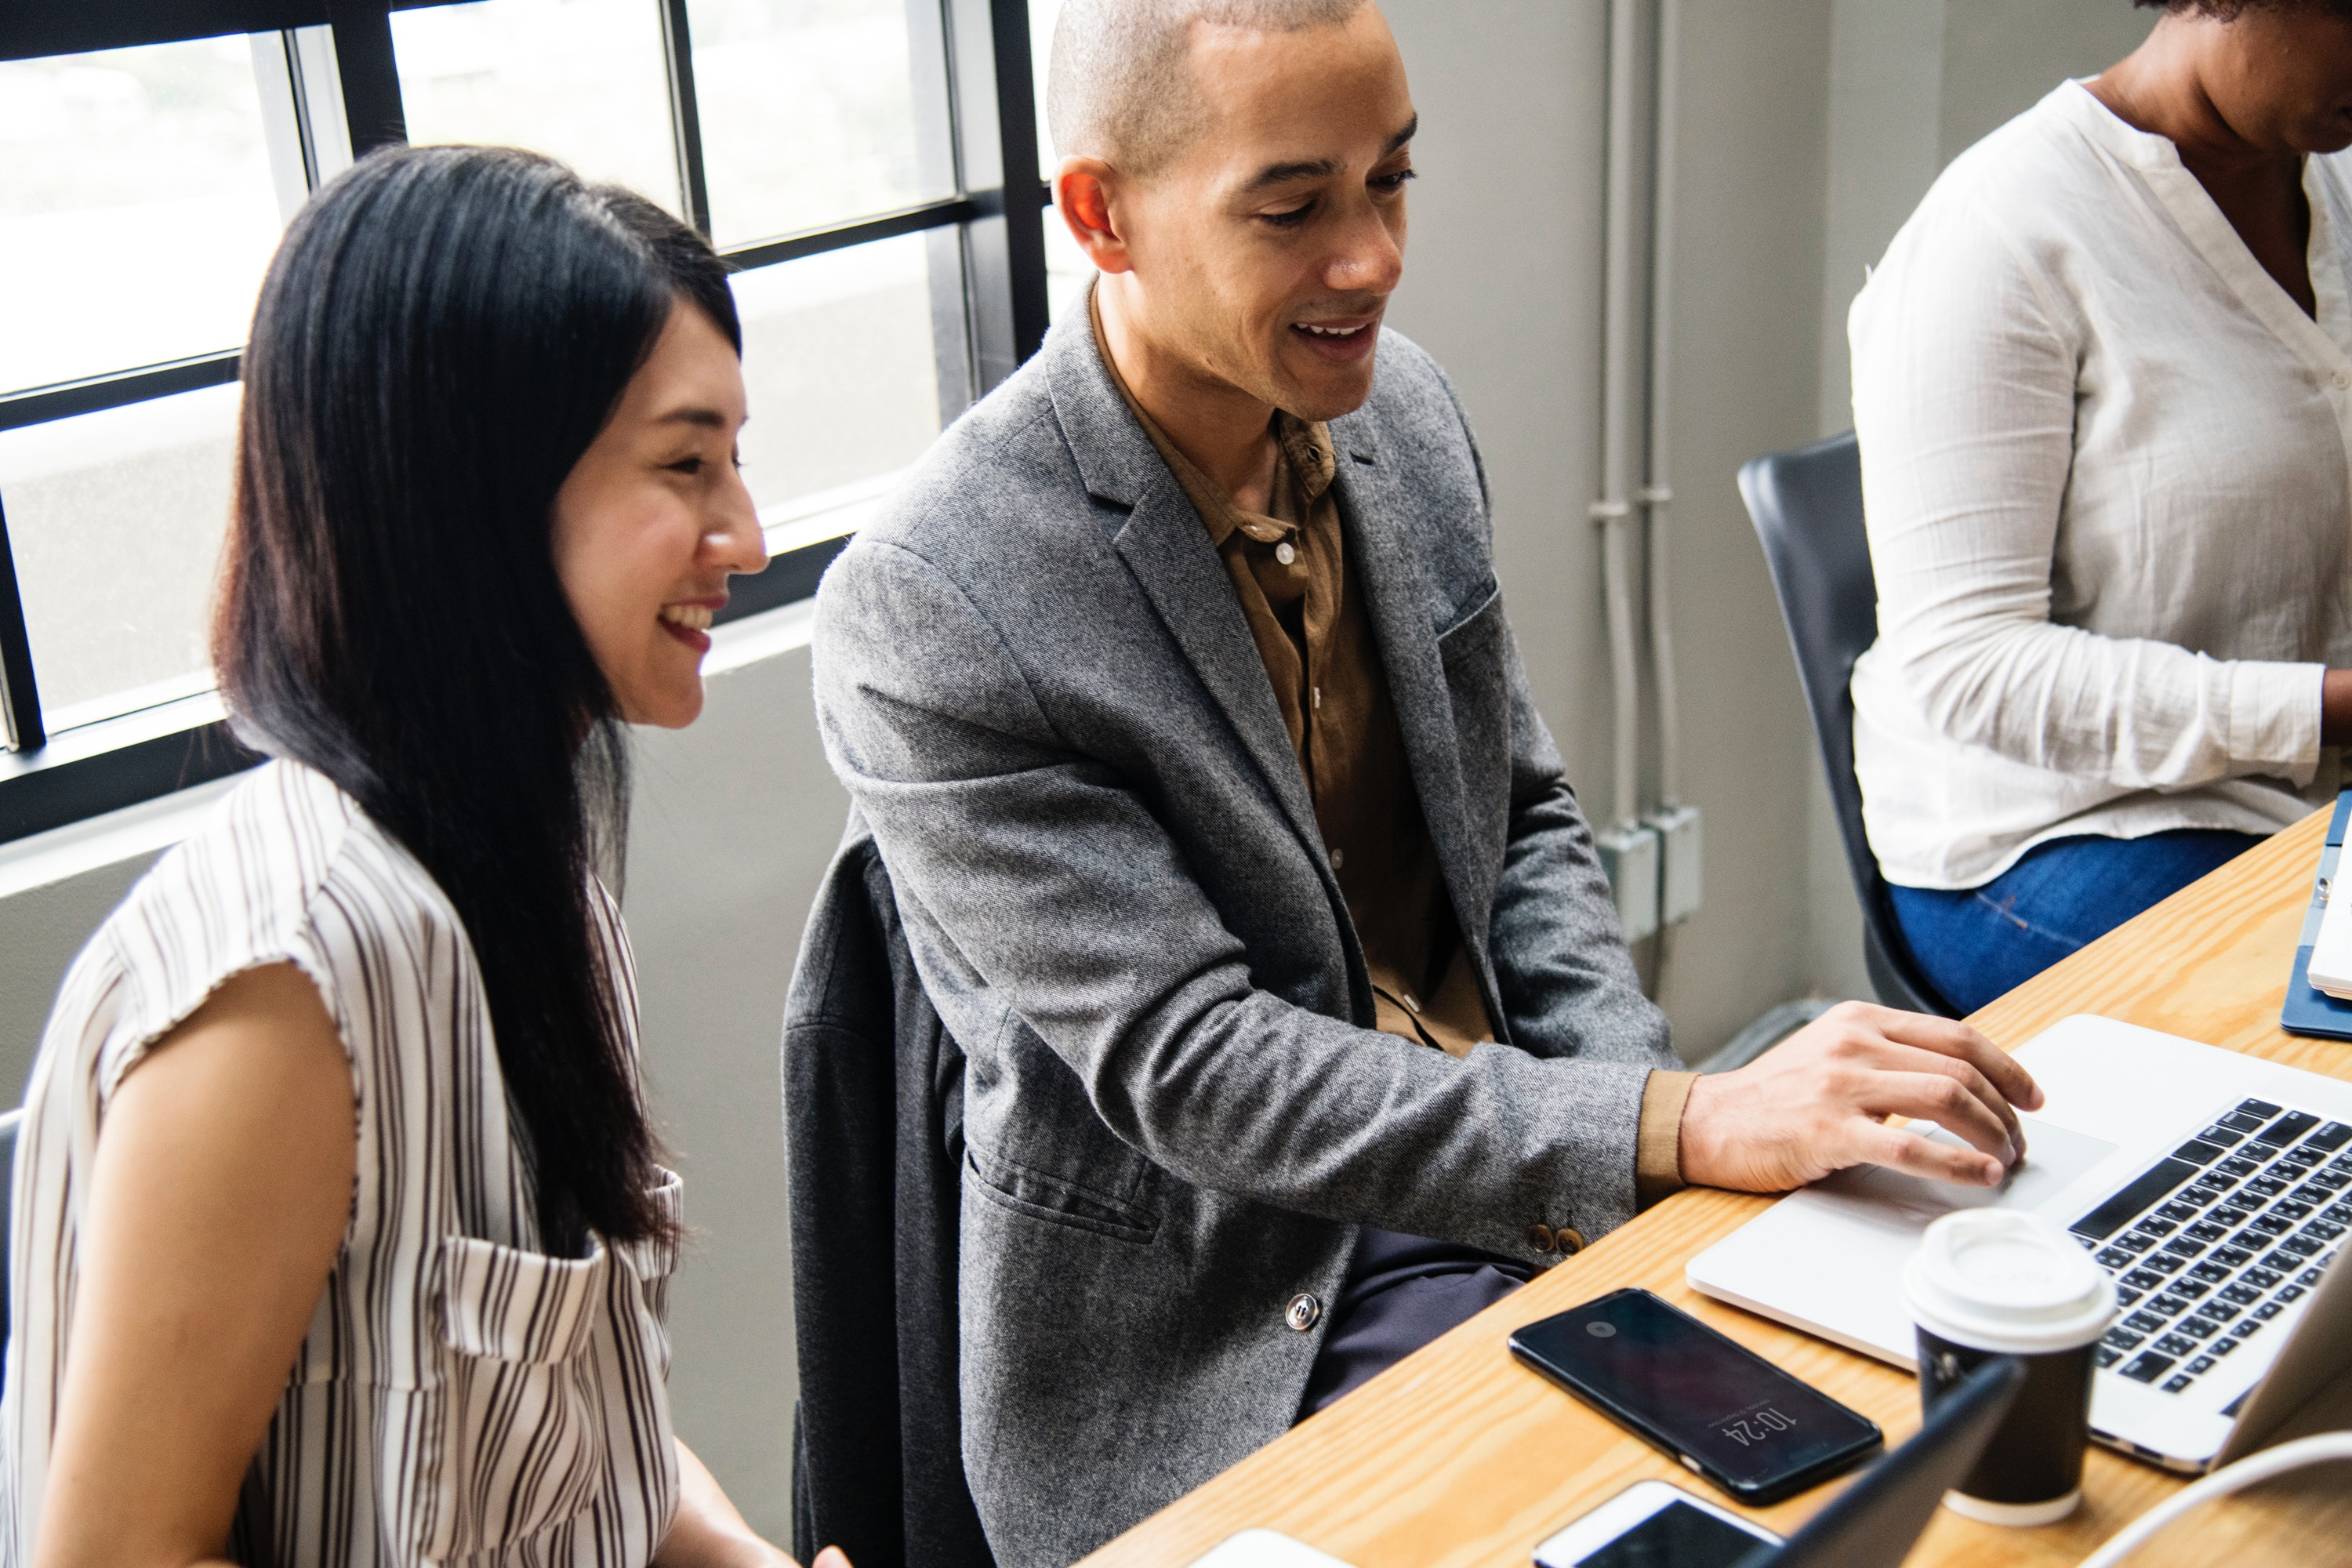 Young man and woman smiling at a computer in an office